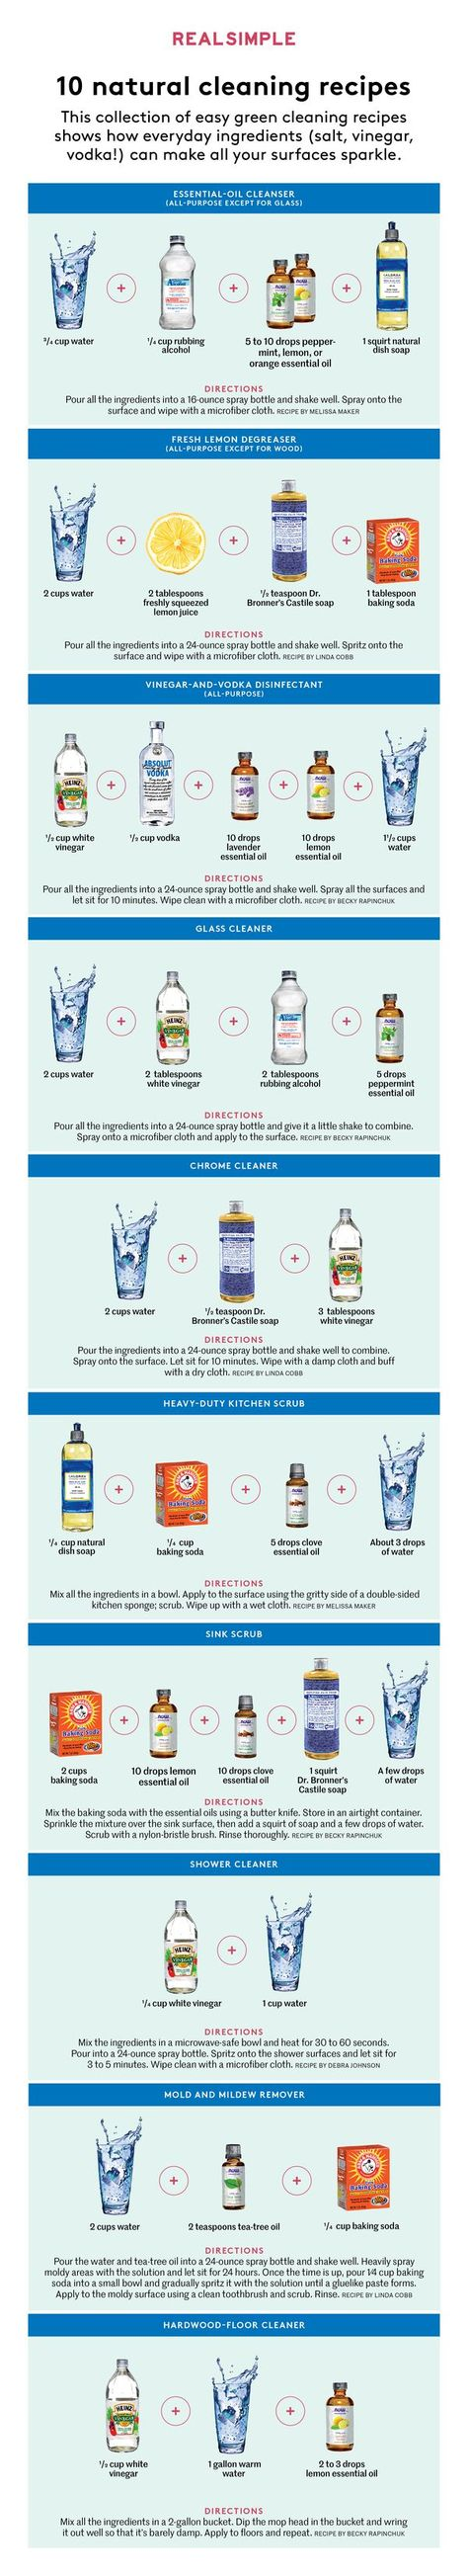 10 All Natural DIY Cleaners to Scrub every Inch of Your Home   Real Simple